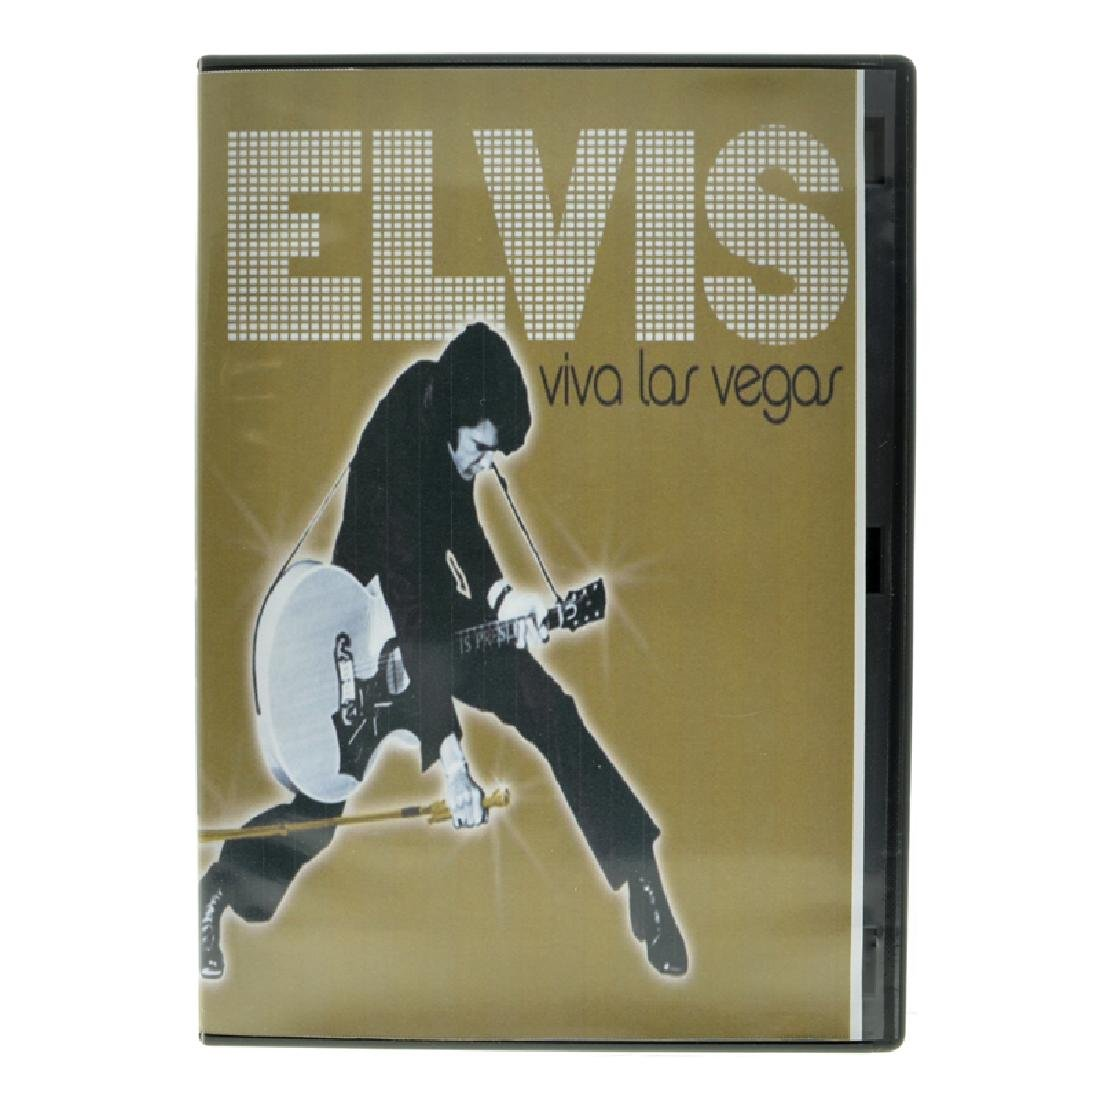 Elvis Presley Movie: Elvis Viva Las Vegas